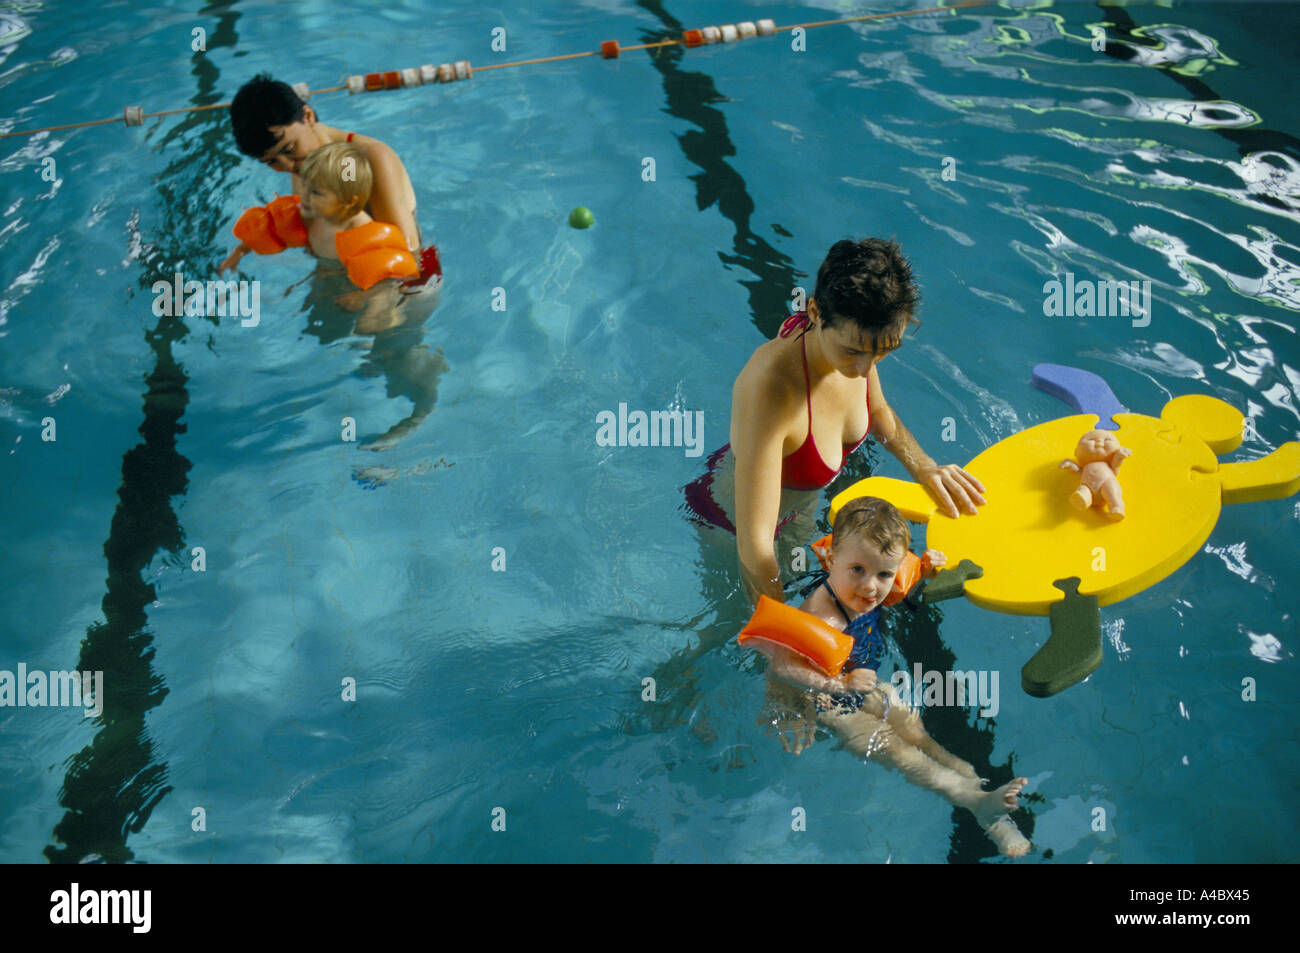 YOUNG CHILDREN, LEARNING TO SWIM, WEARING INFLATABLE ARM-BANDS, ACCOMPANIED BY THEIR MOTHERS IN SWIMMING POOL, - Stock Image